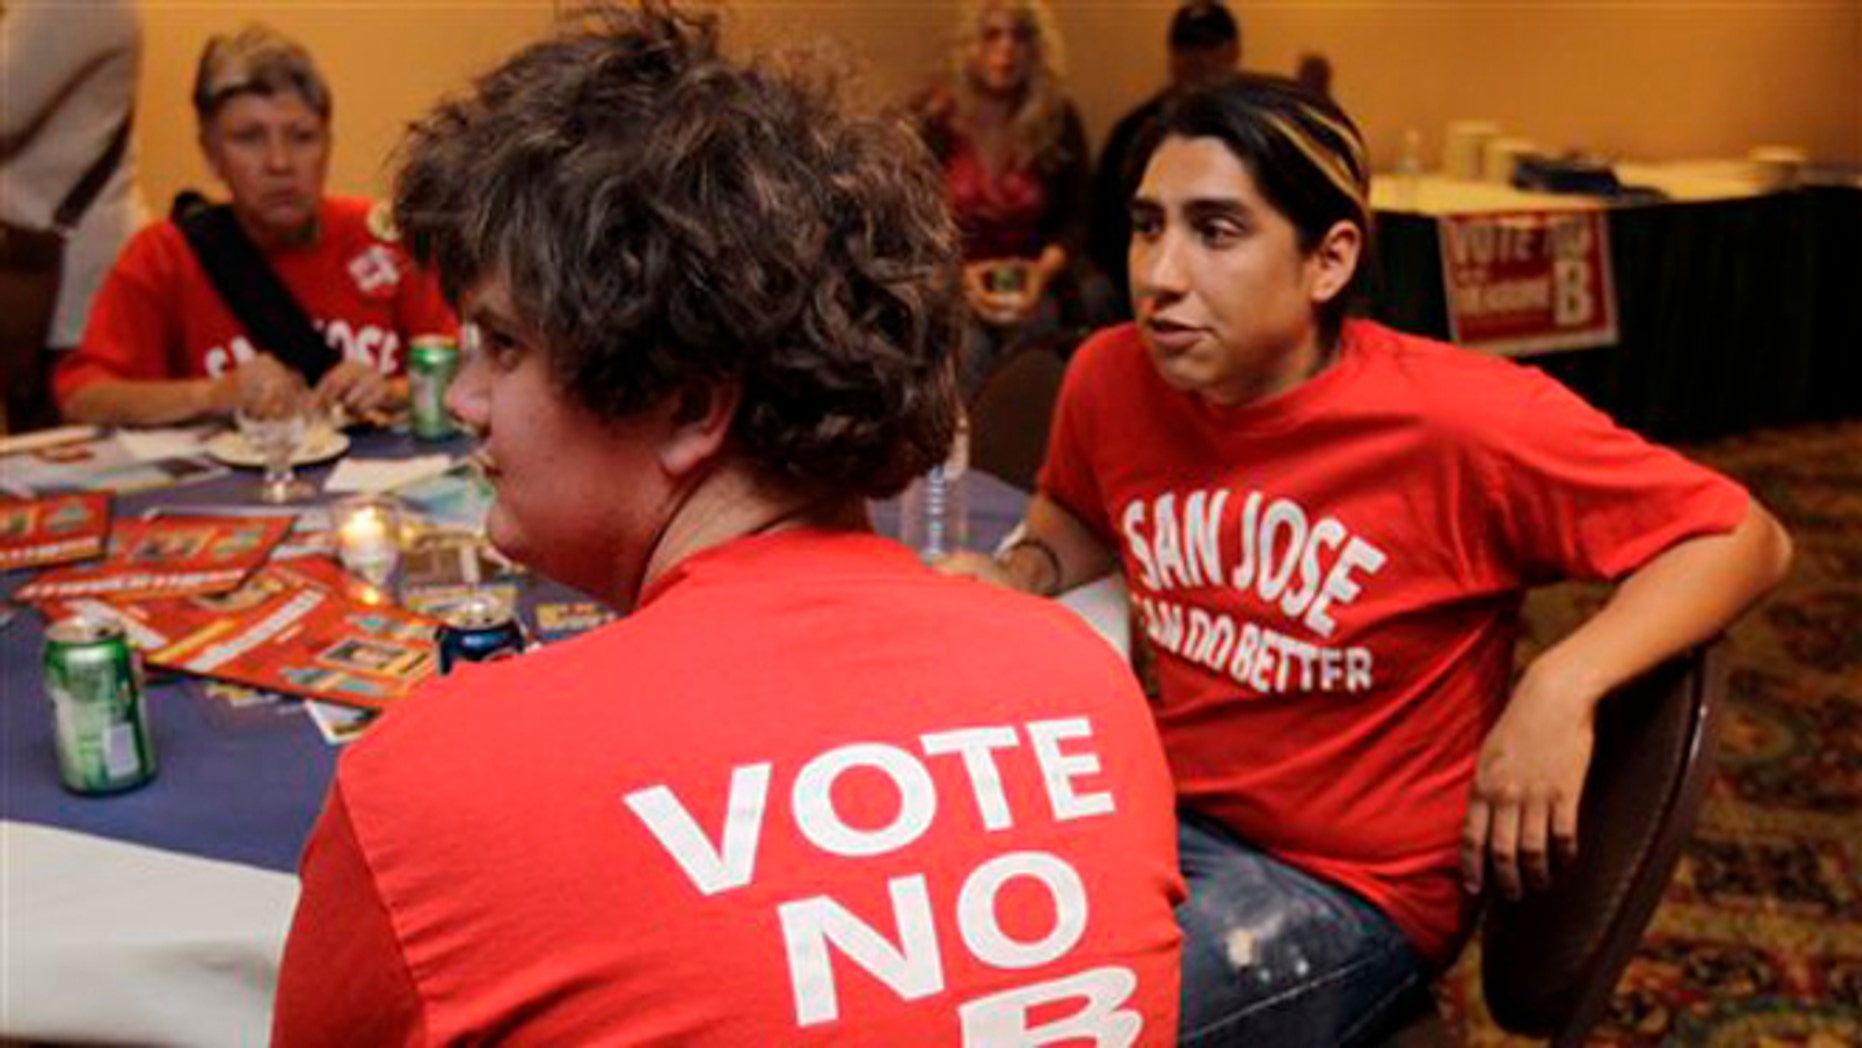 Tuesday, June 5, 2012: Campaign workers  watches election returns at a campaign party for Measure B in San Jose, Calif.